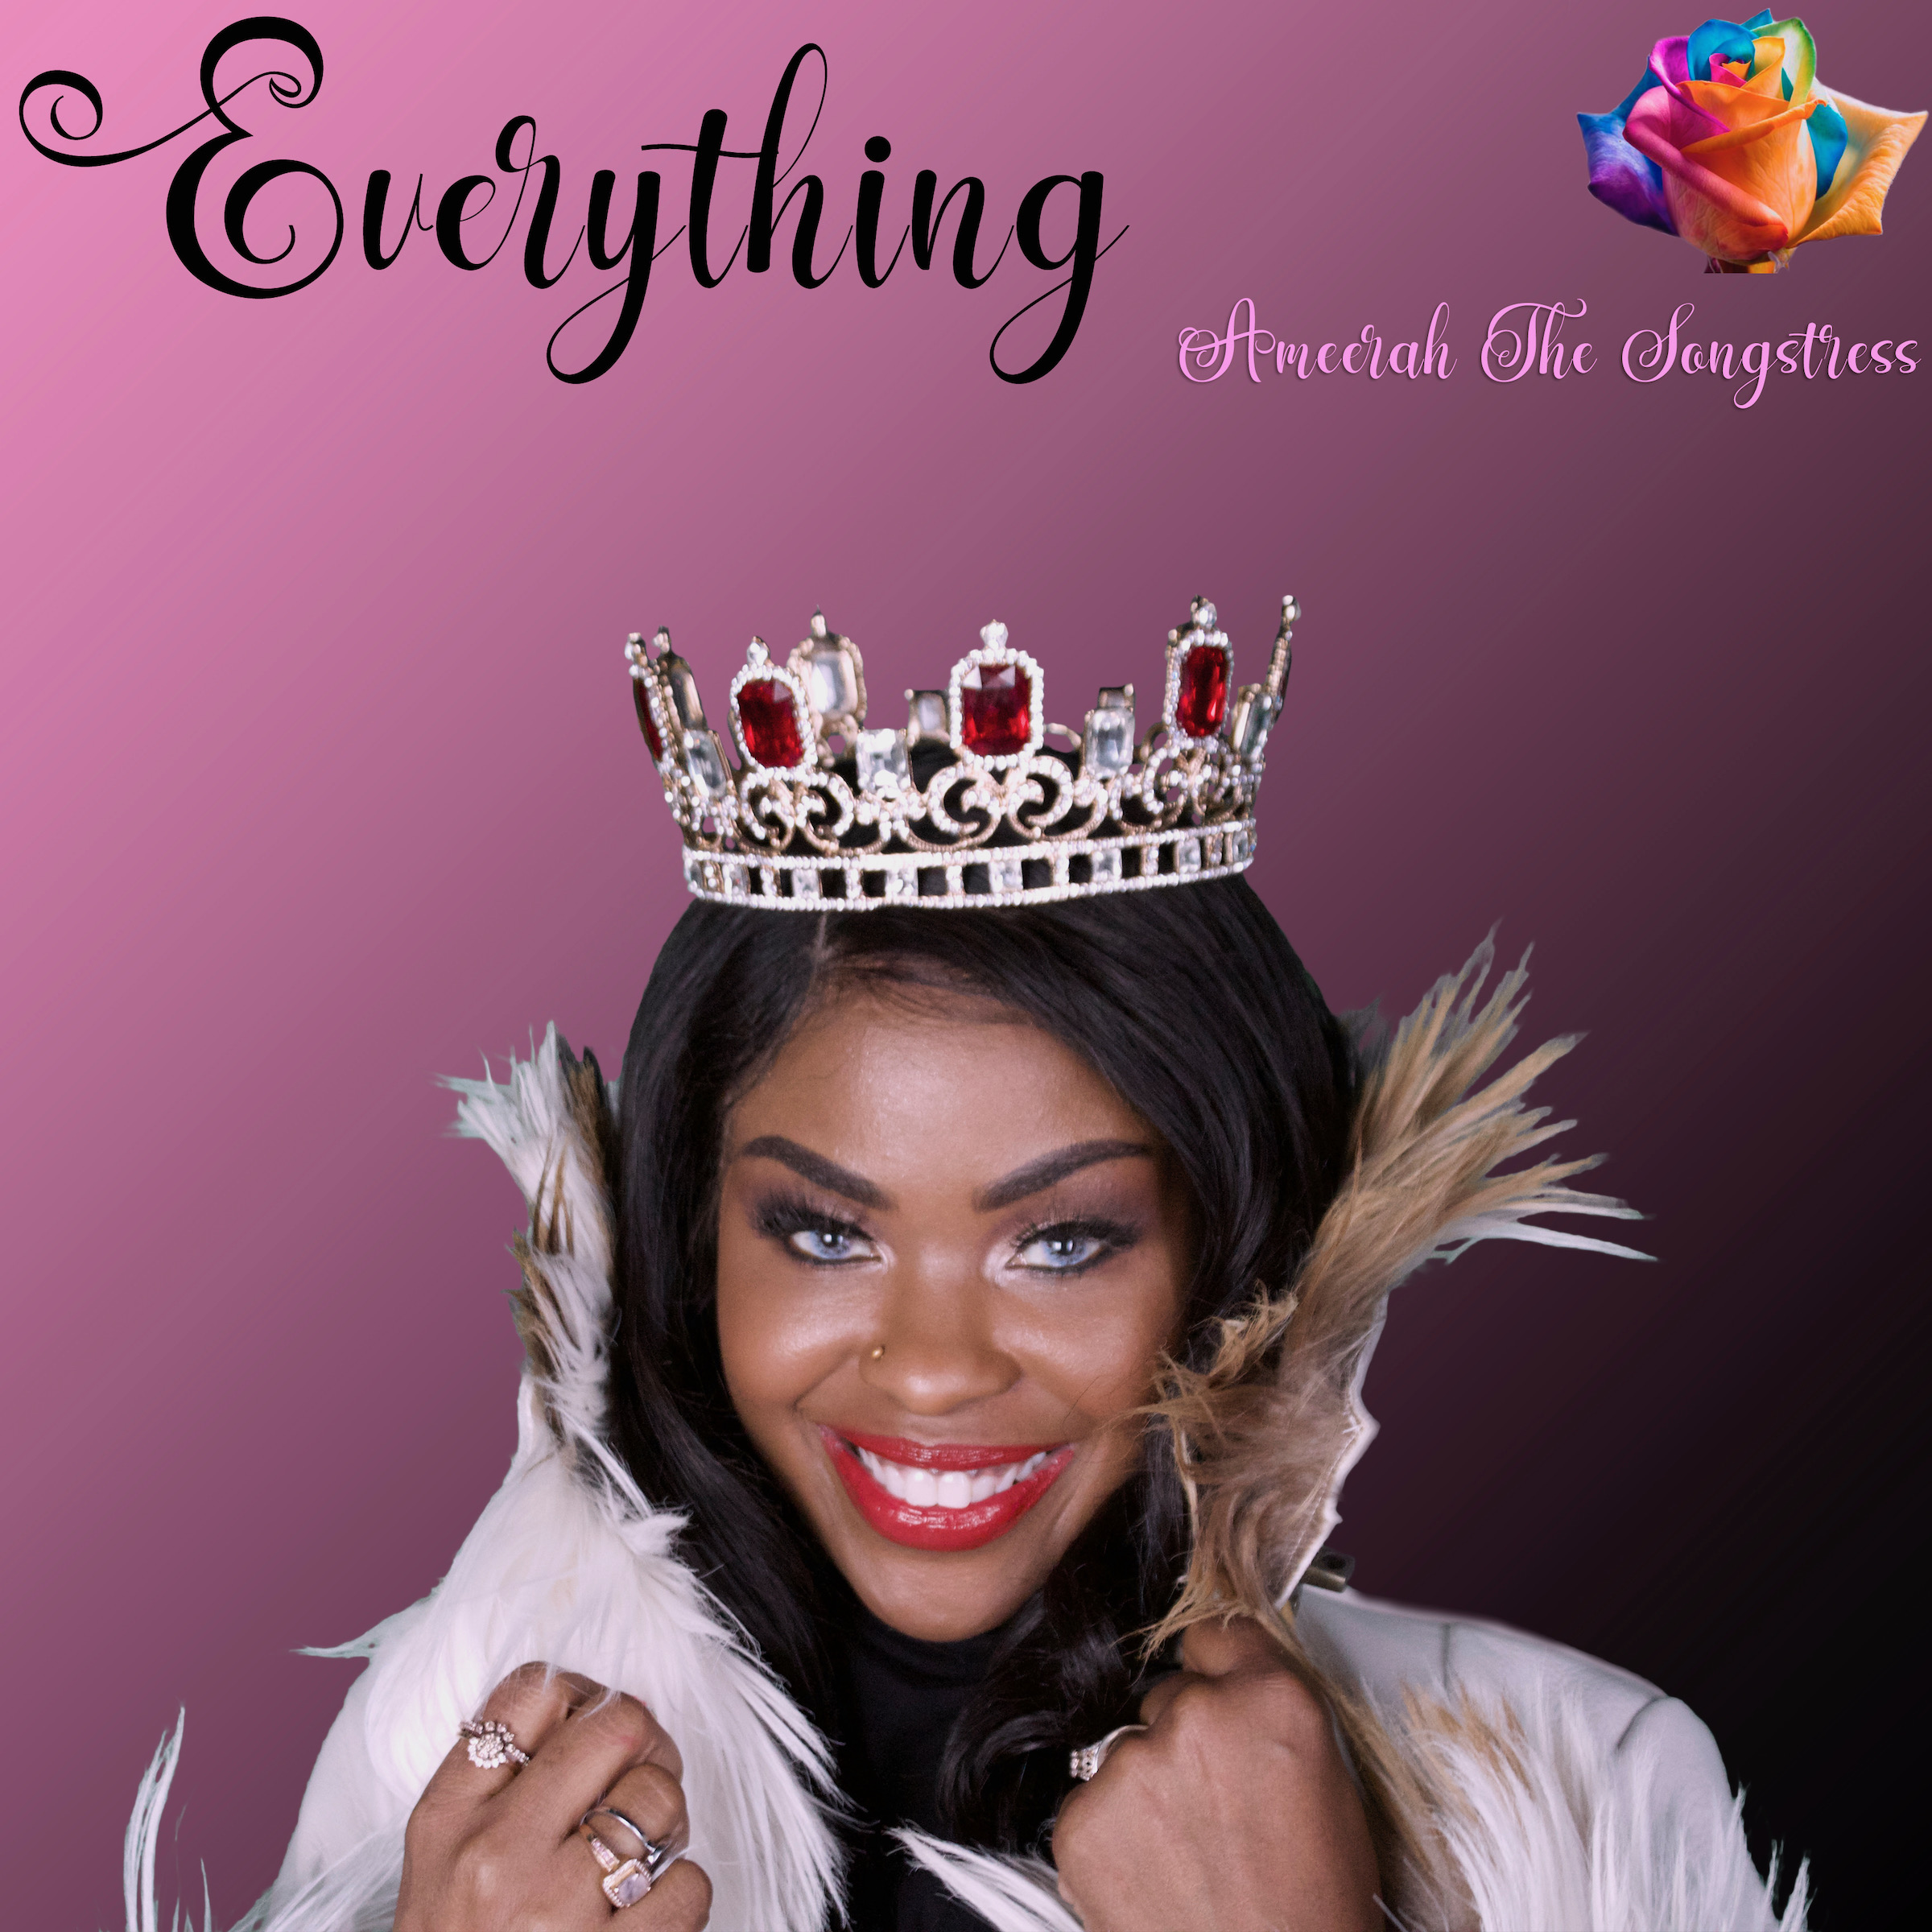 New Single From Ameerah The Songstress